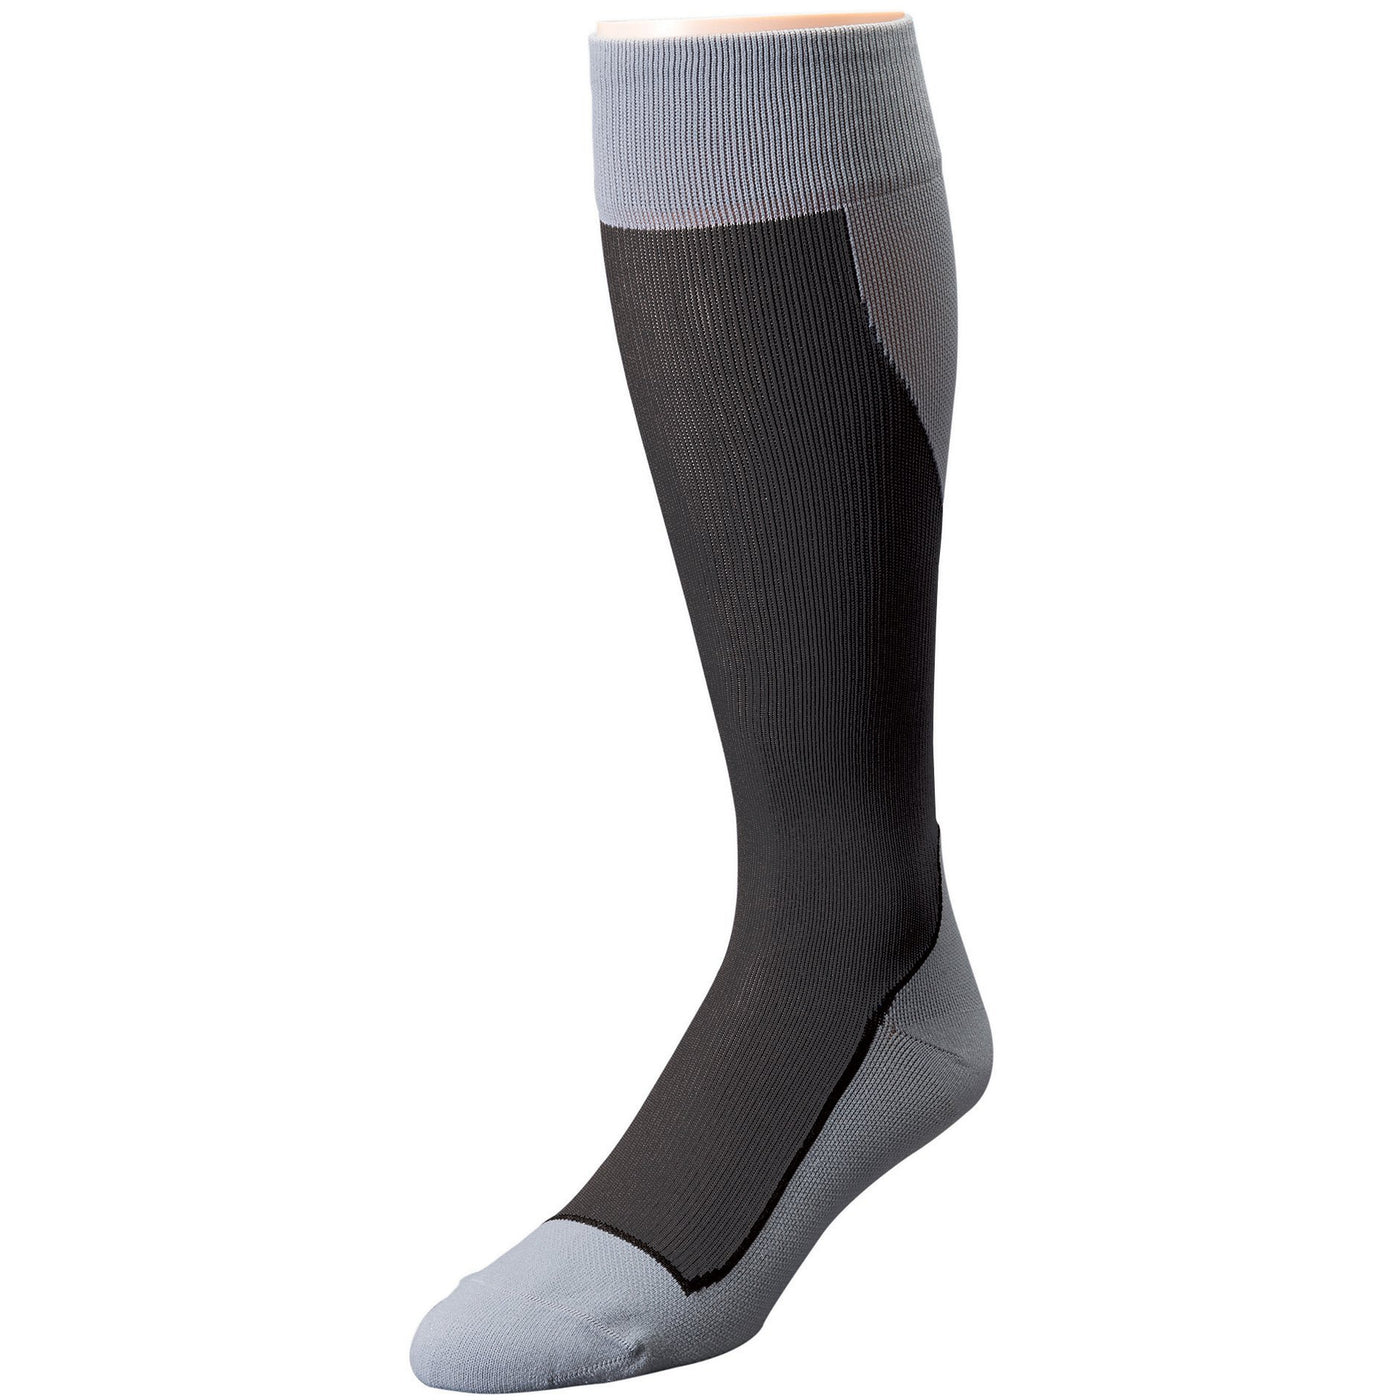 2a1fc46a054ea8 Jobst Sport Sock 15-20mmHg — BrightLife Direct